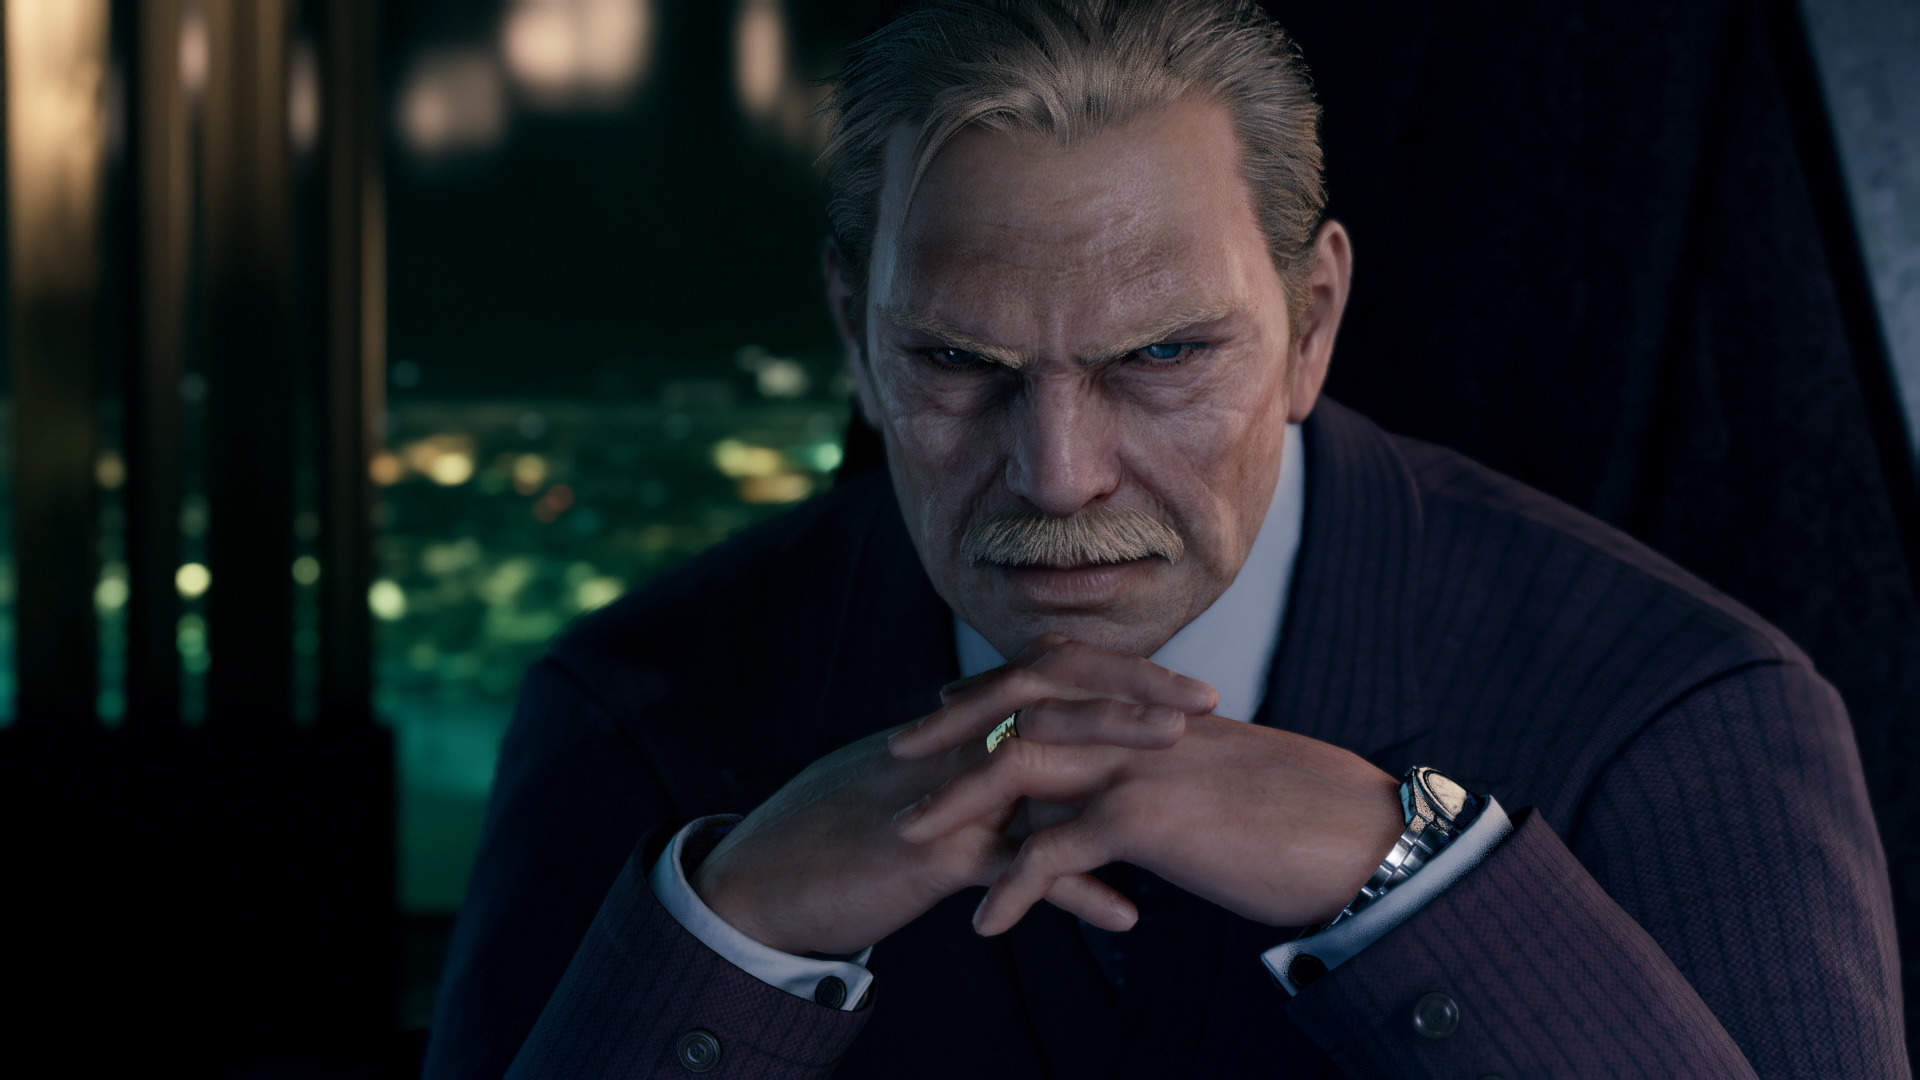 Final Fantasy VII Remake Shows Photos And Bios For Top Shinra Executives, Including President Shinra Himself